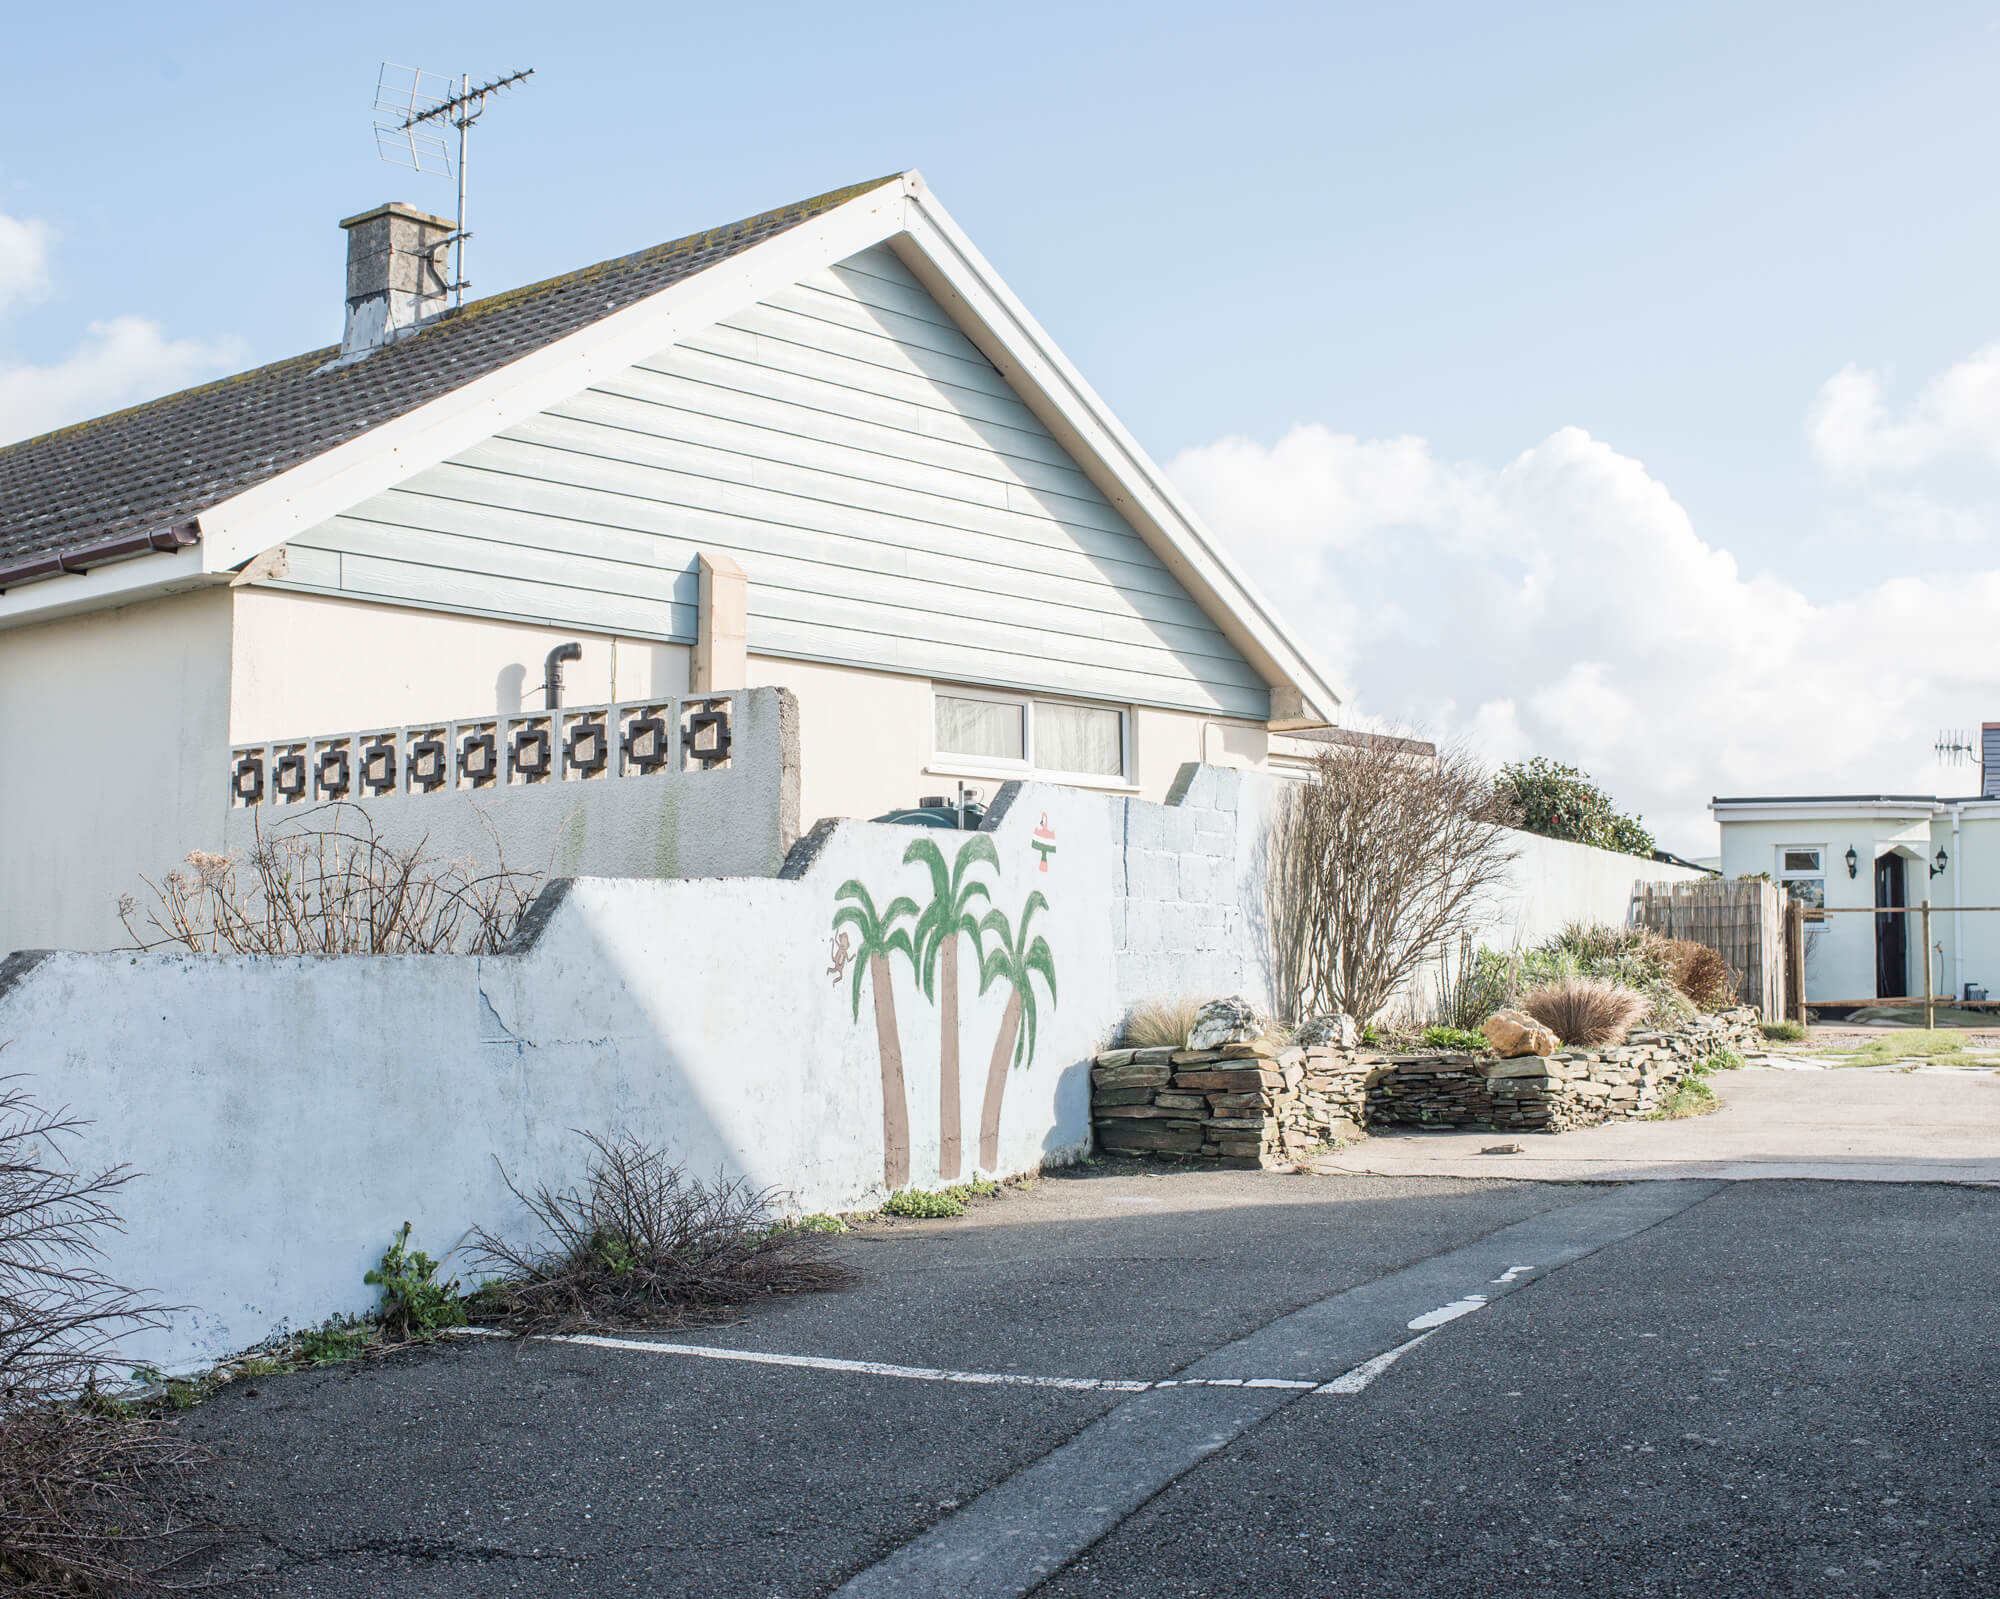 house in sunlight with green palm trees painted on the side of a white wall in Cornwall